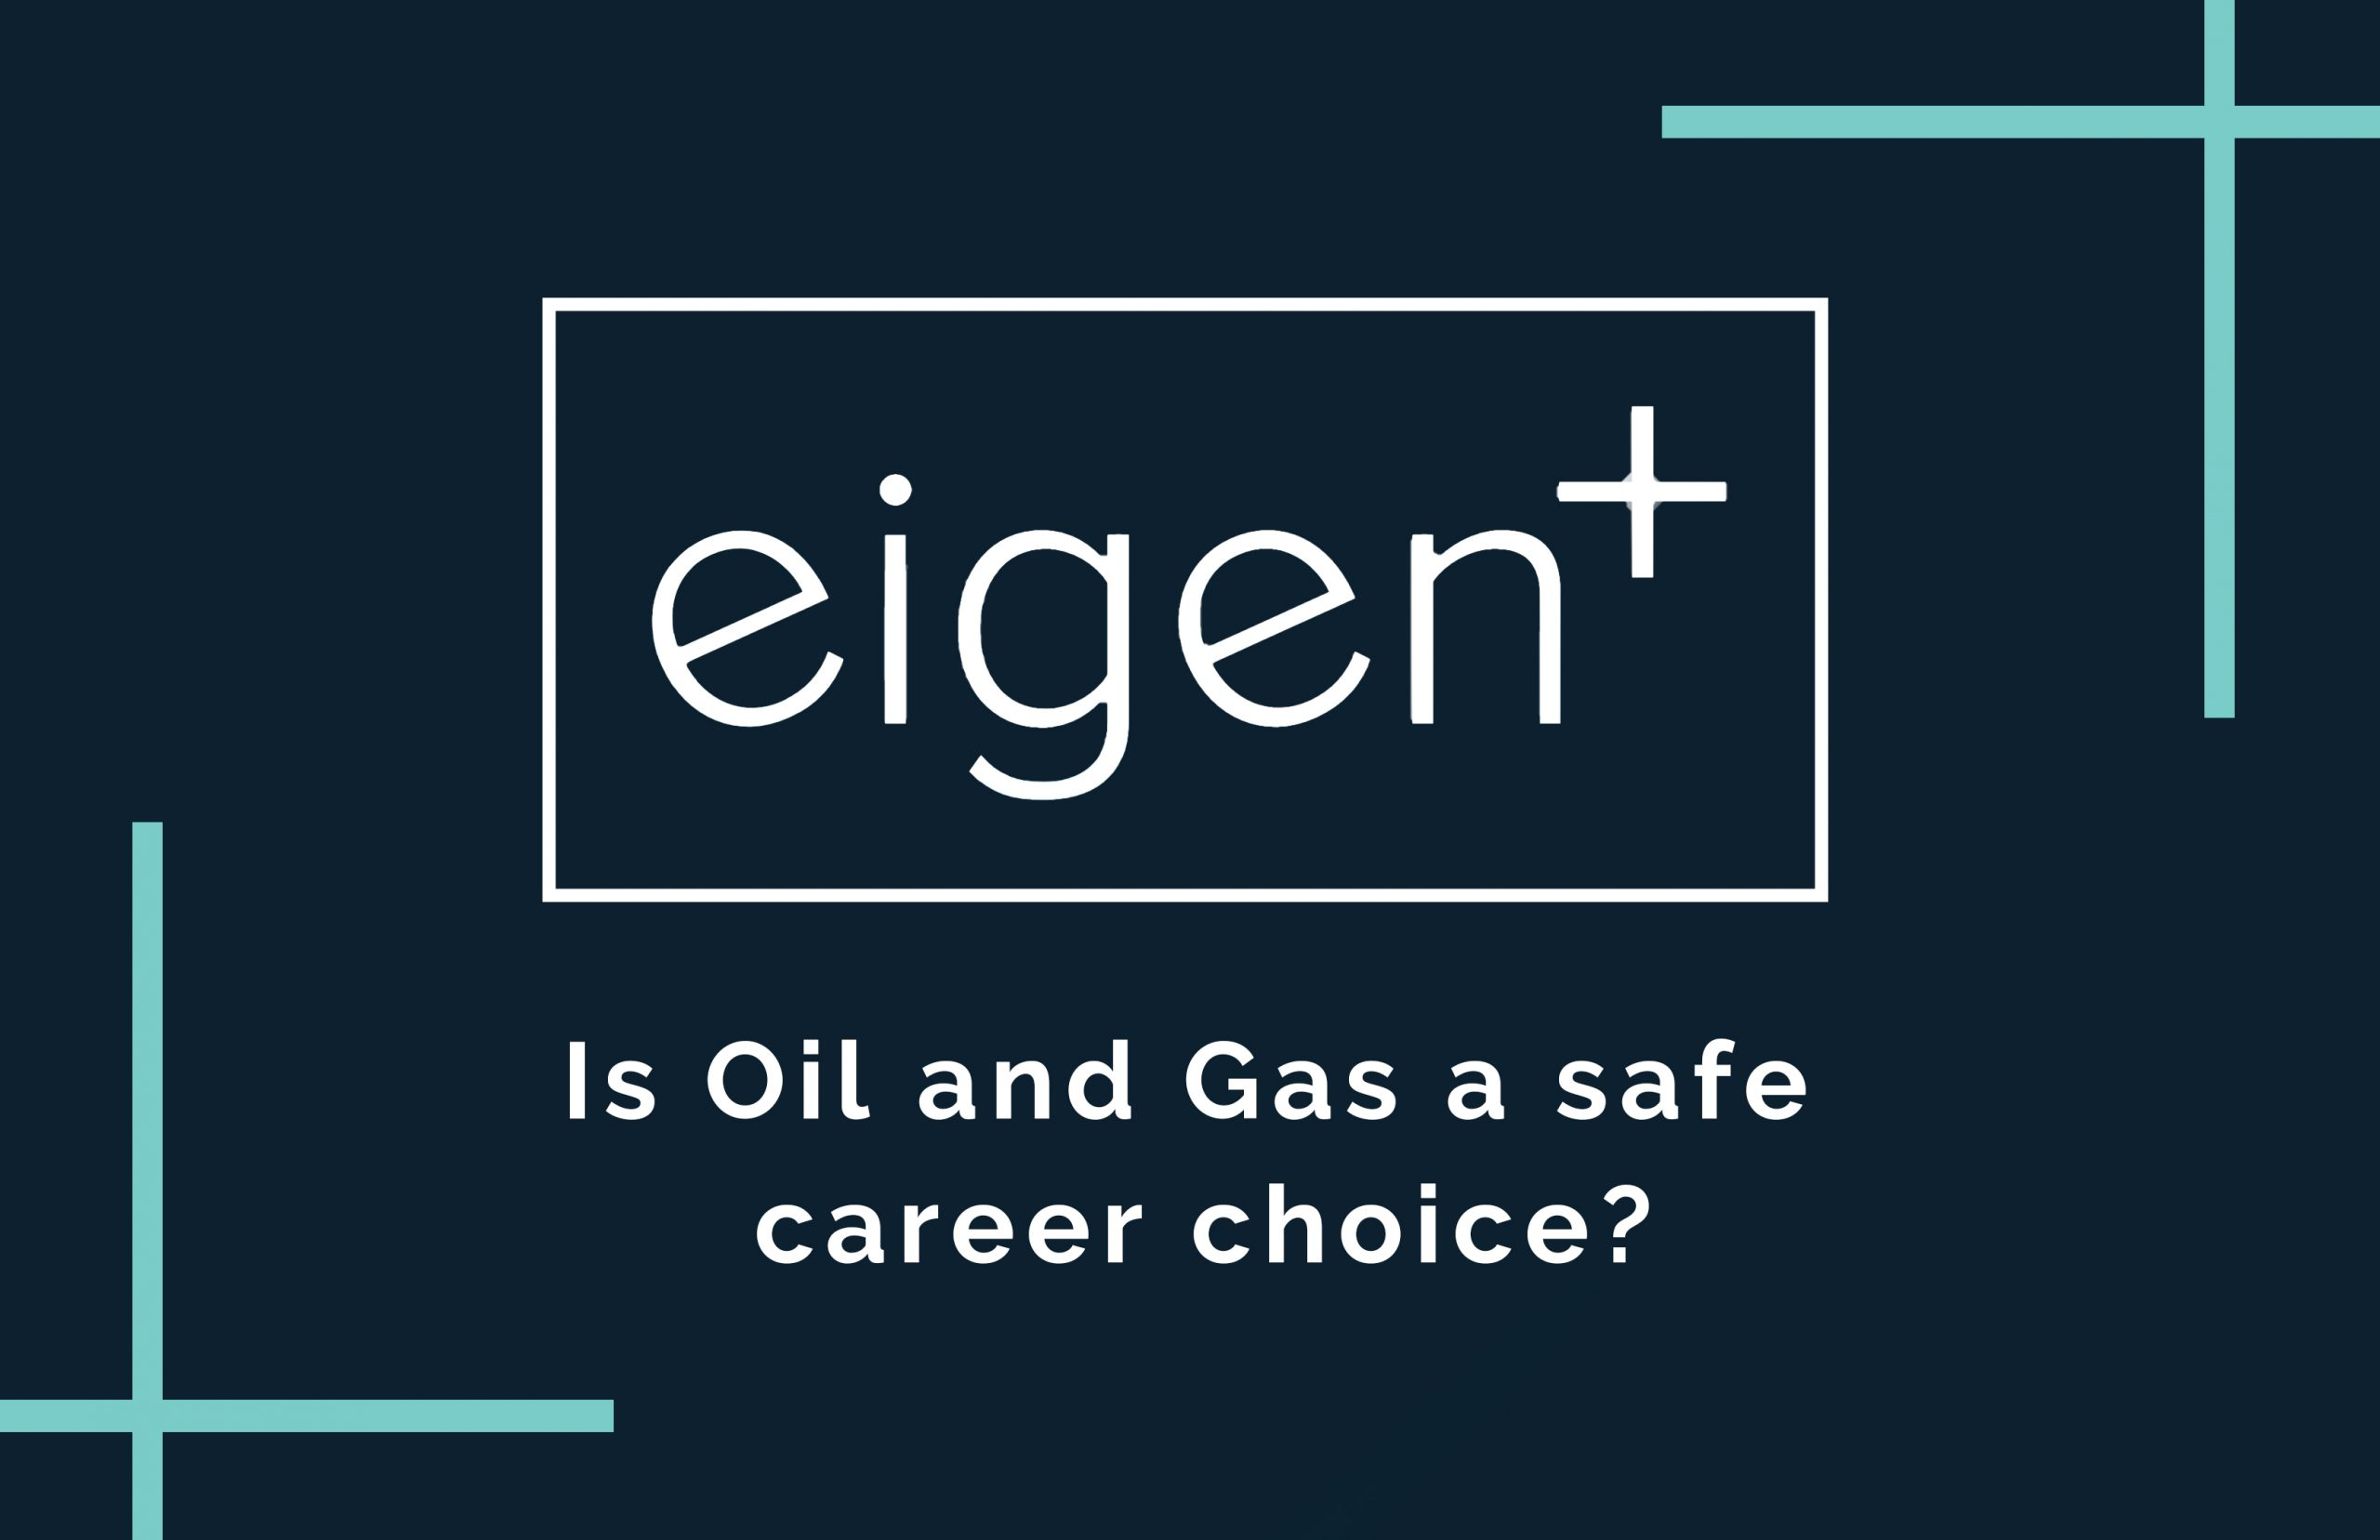 Building a career in Oil and Gas: A safe career choice?